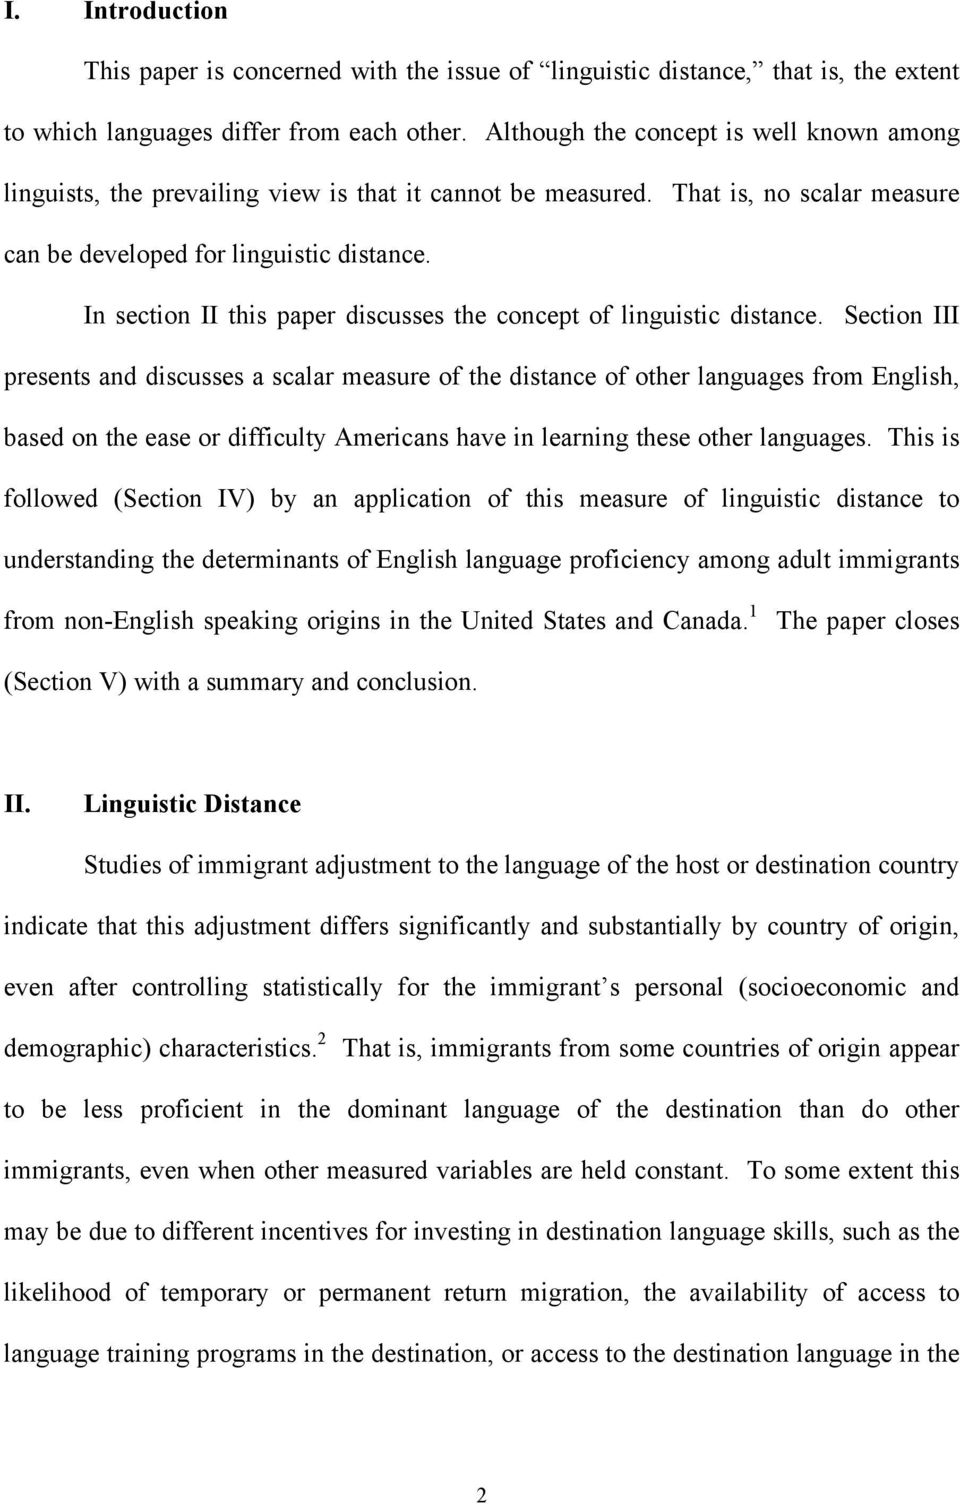 In section II this paper discusses the concept of linguistic distance.